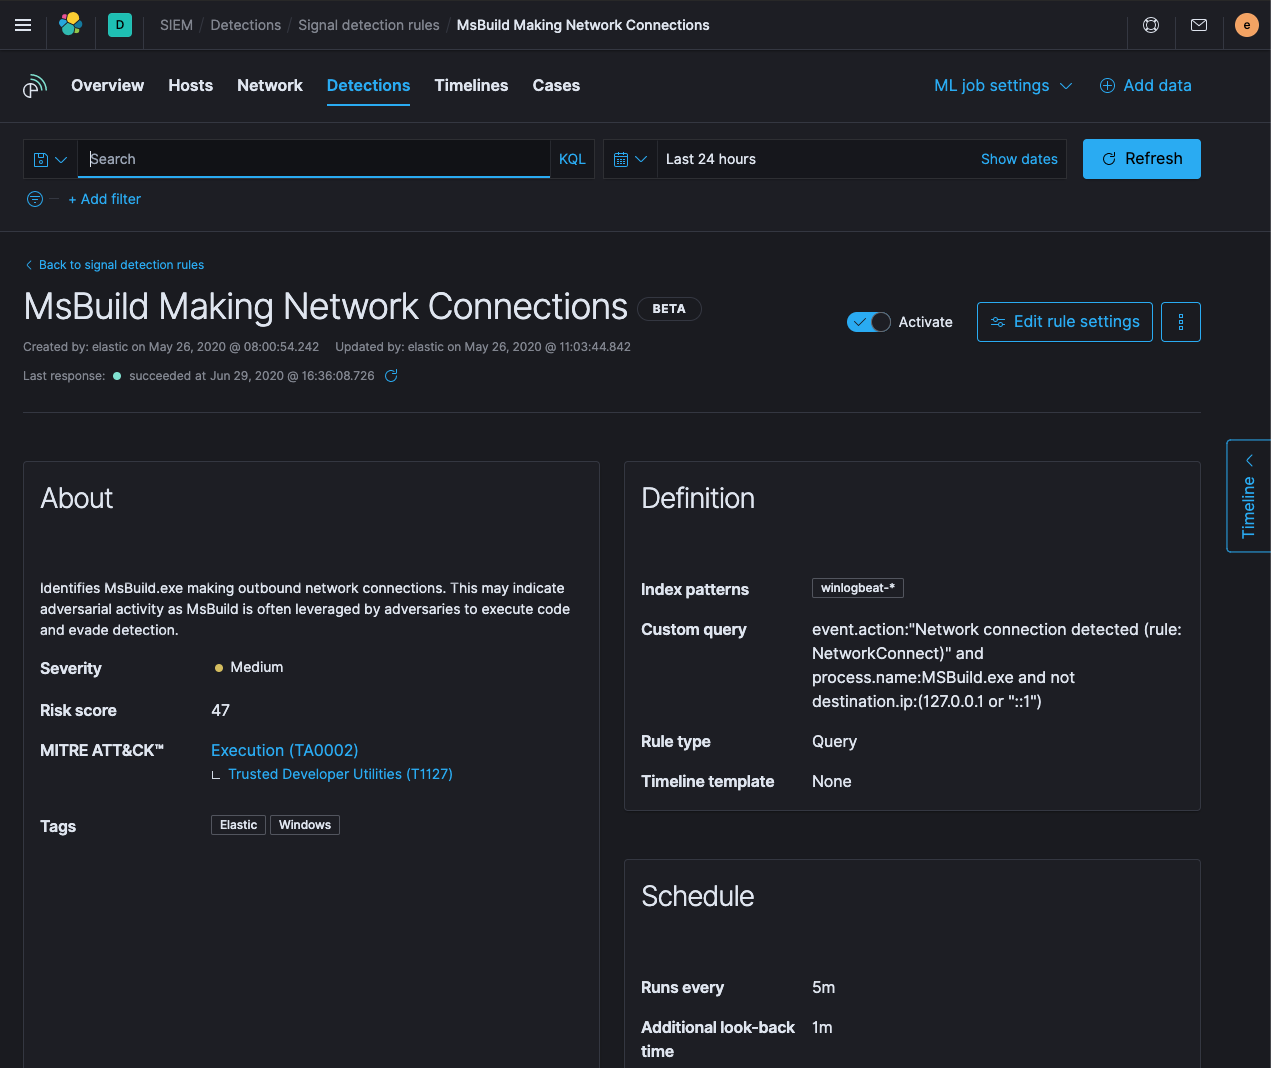 detection-rules-repo-blog-msbuild-network-connections.png